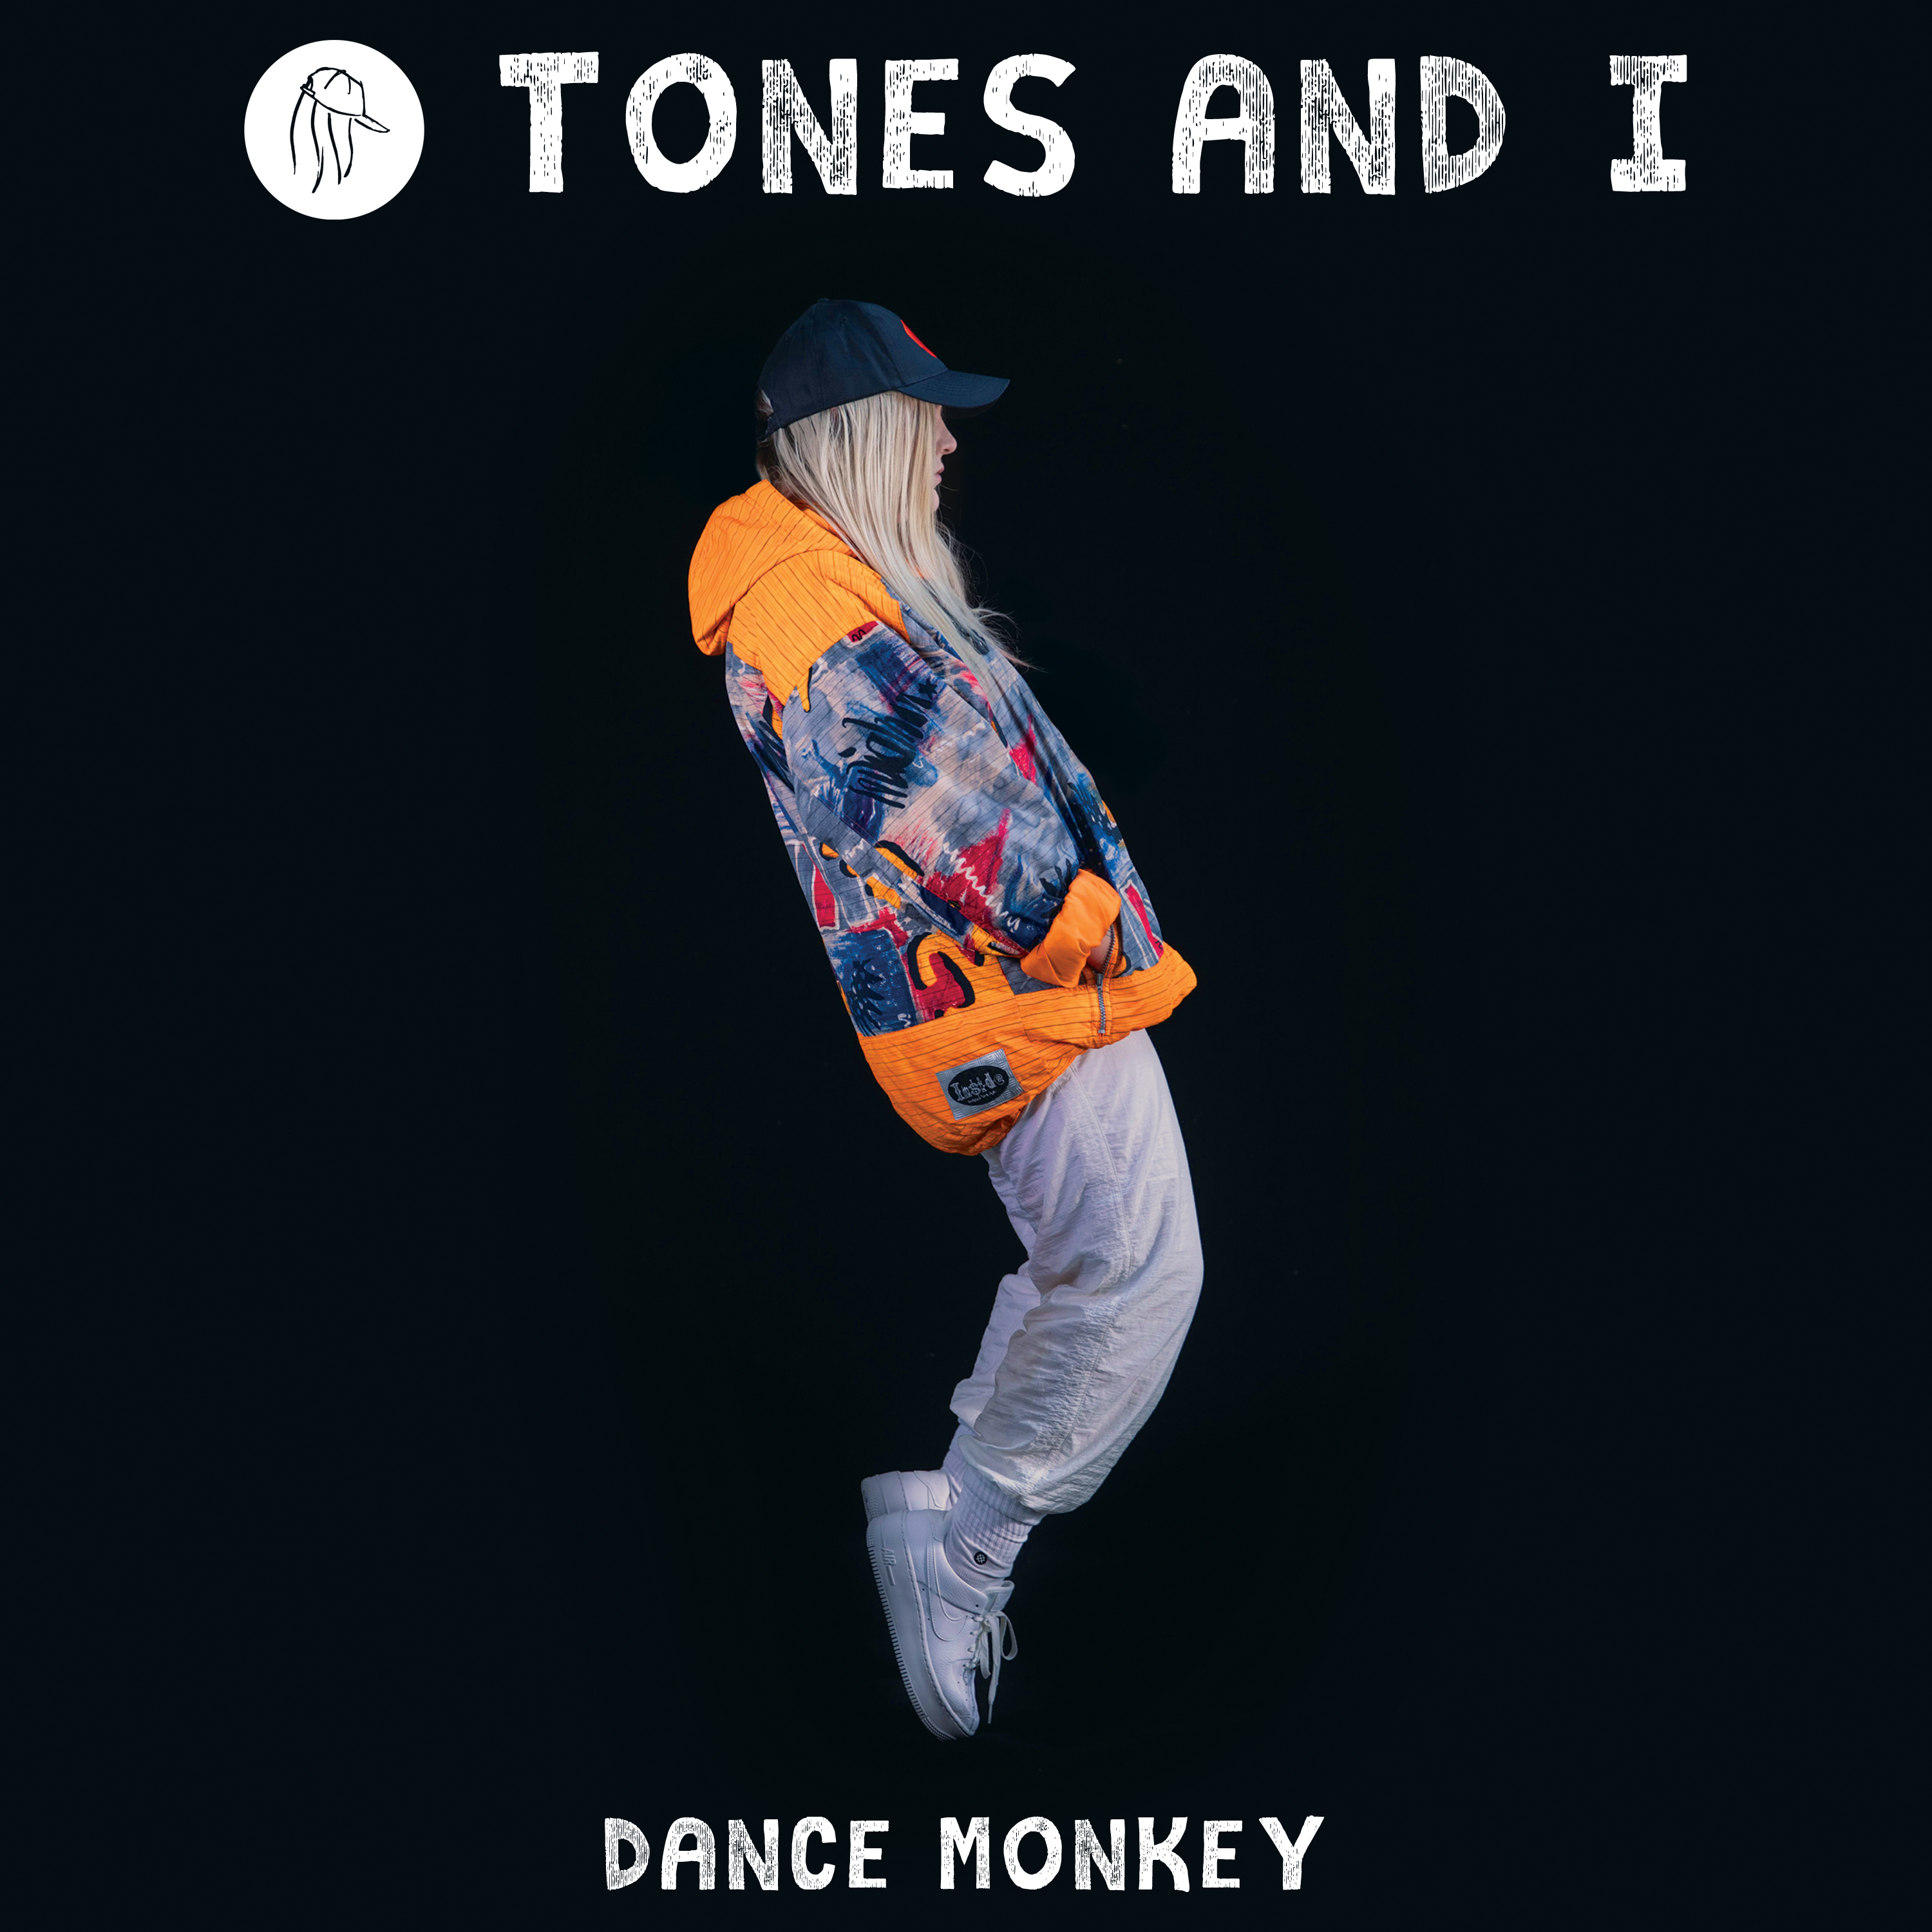 Tones_And_I – Dance Monkey (Cover)